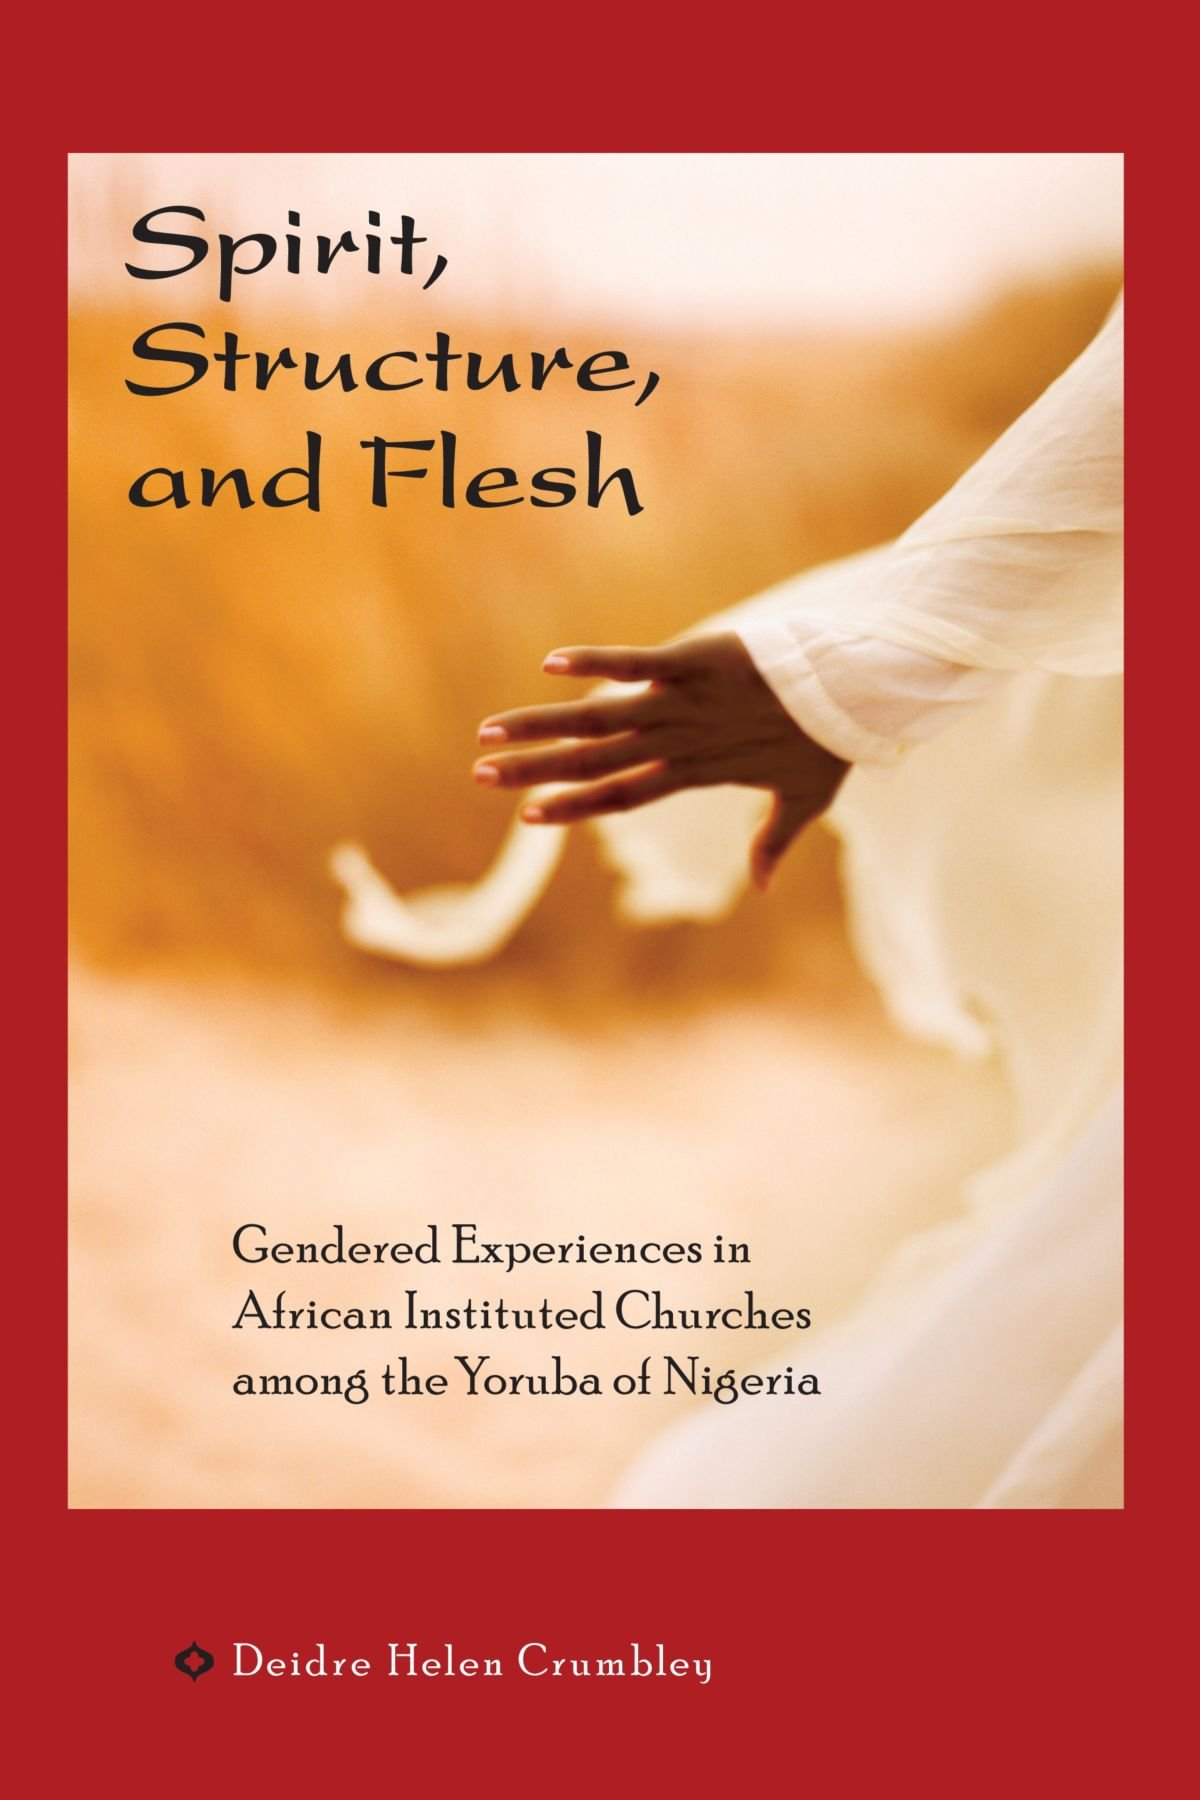 Spirit, Structure, and Flesh: Gender and Power in Yoruba African Instituted Churches (Africa and the Diaspora: History, Politics, Culture) ebook